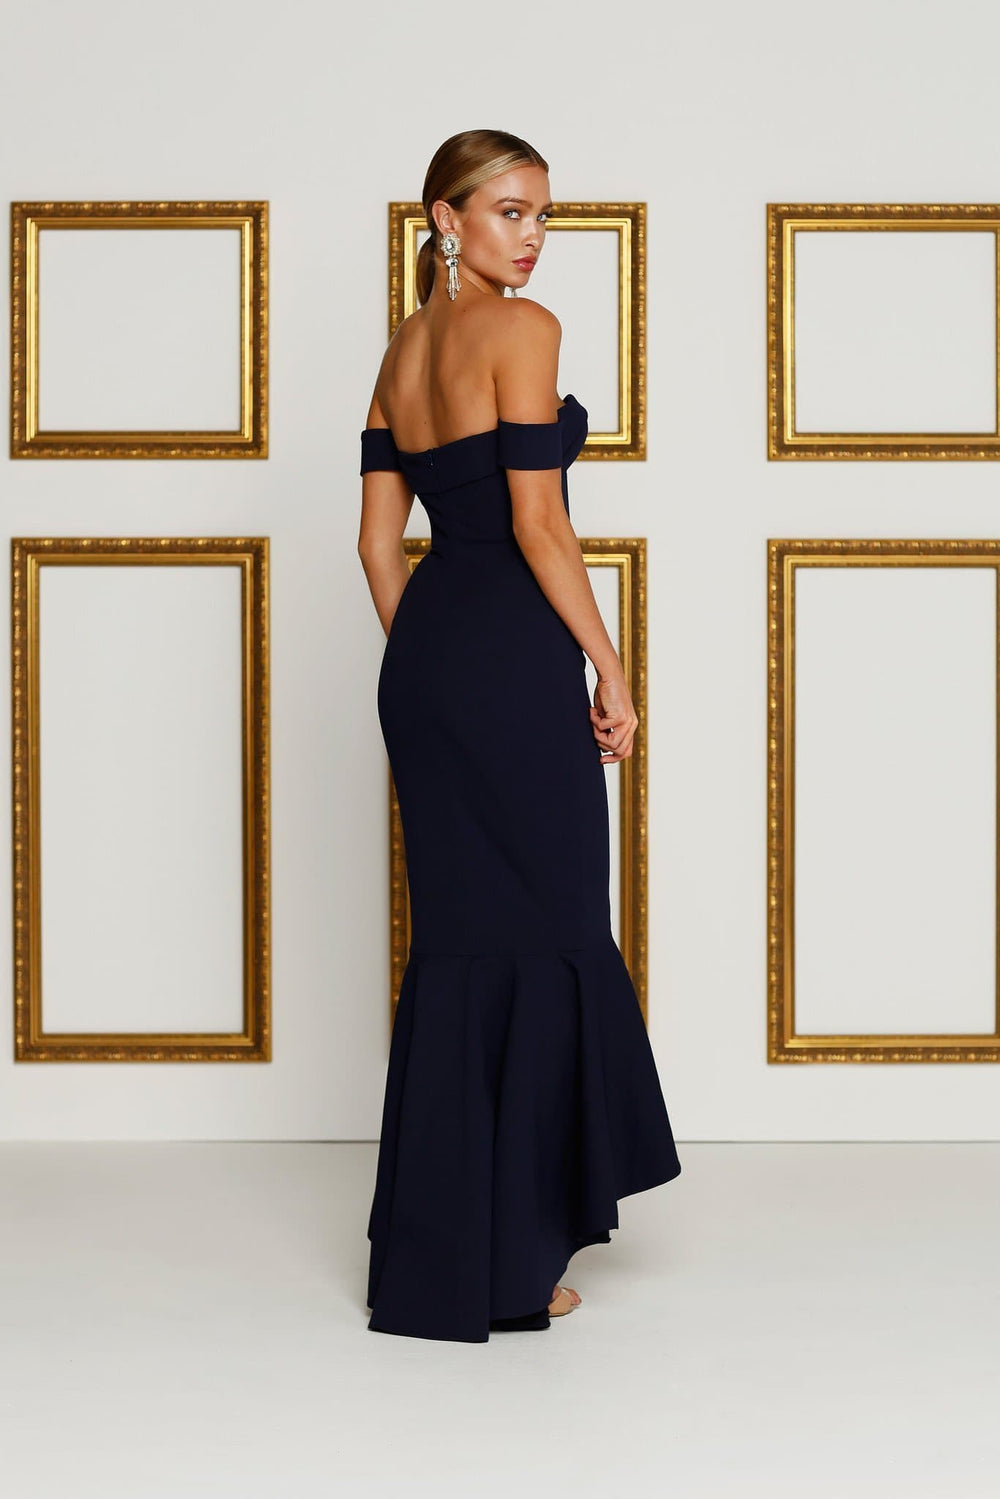 Sapphire - Navy Cocktail Dress in Mermaid Style | Off-Shoulder Drapes